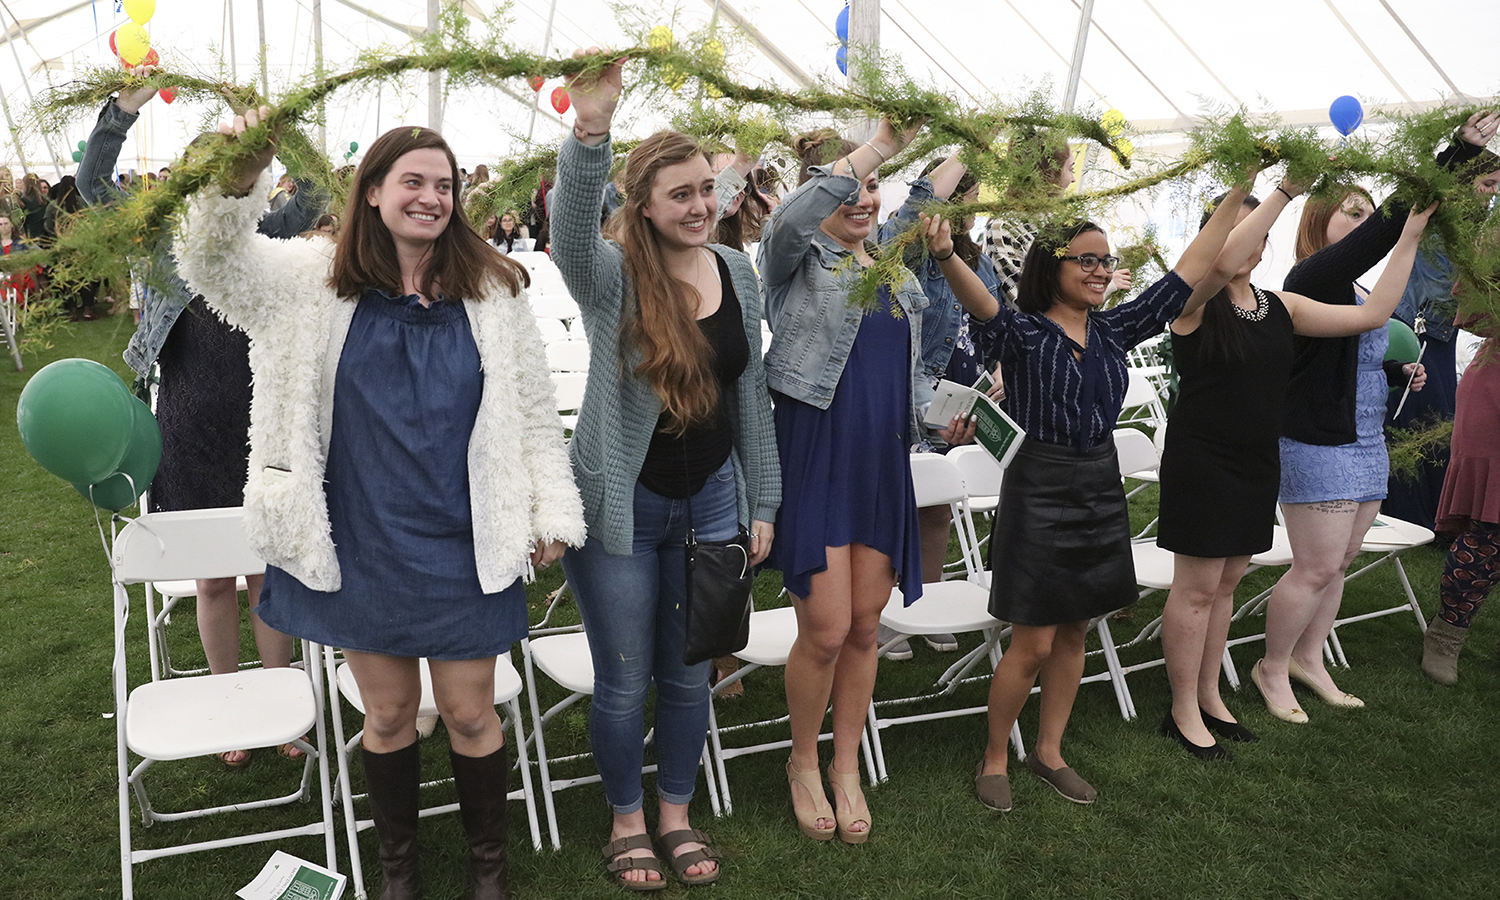 """Members of the William Smith Class of 2018 pass the laurel to members of the Class of 2019. The passing of the laurel recognizes each class as they """"move up"""" to fill the vacancy left by the class ahead of them."""